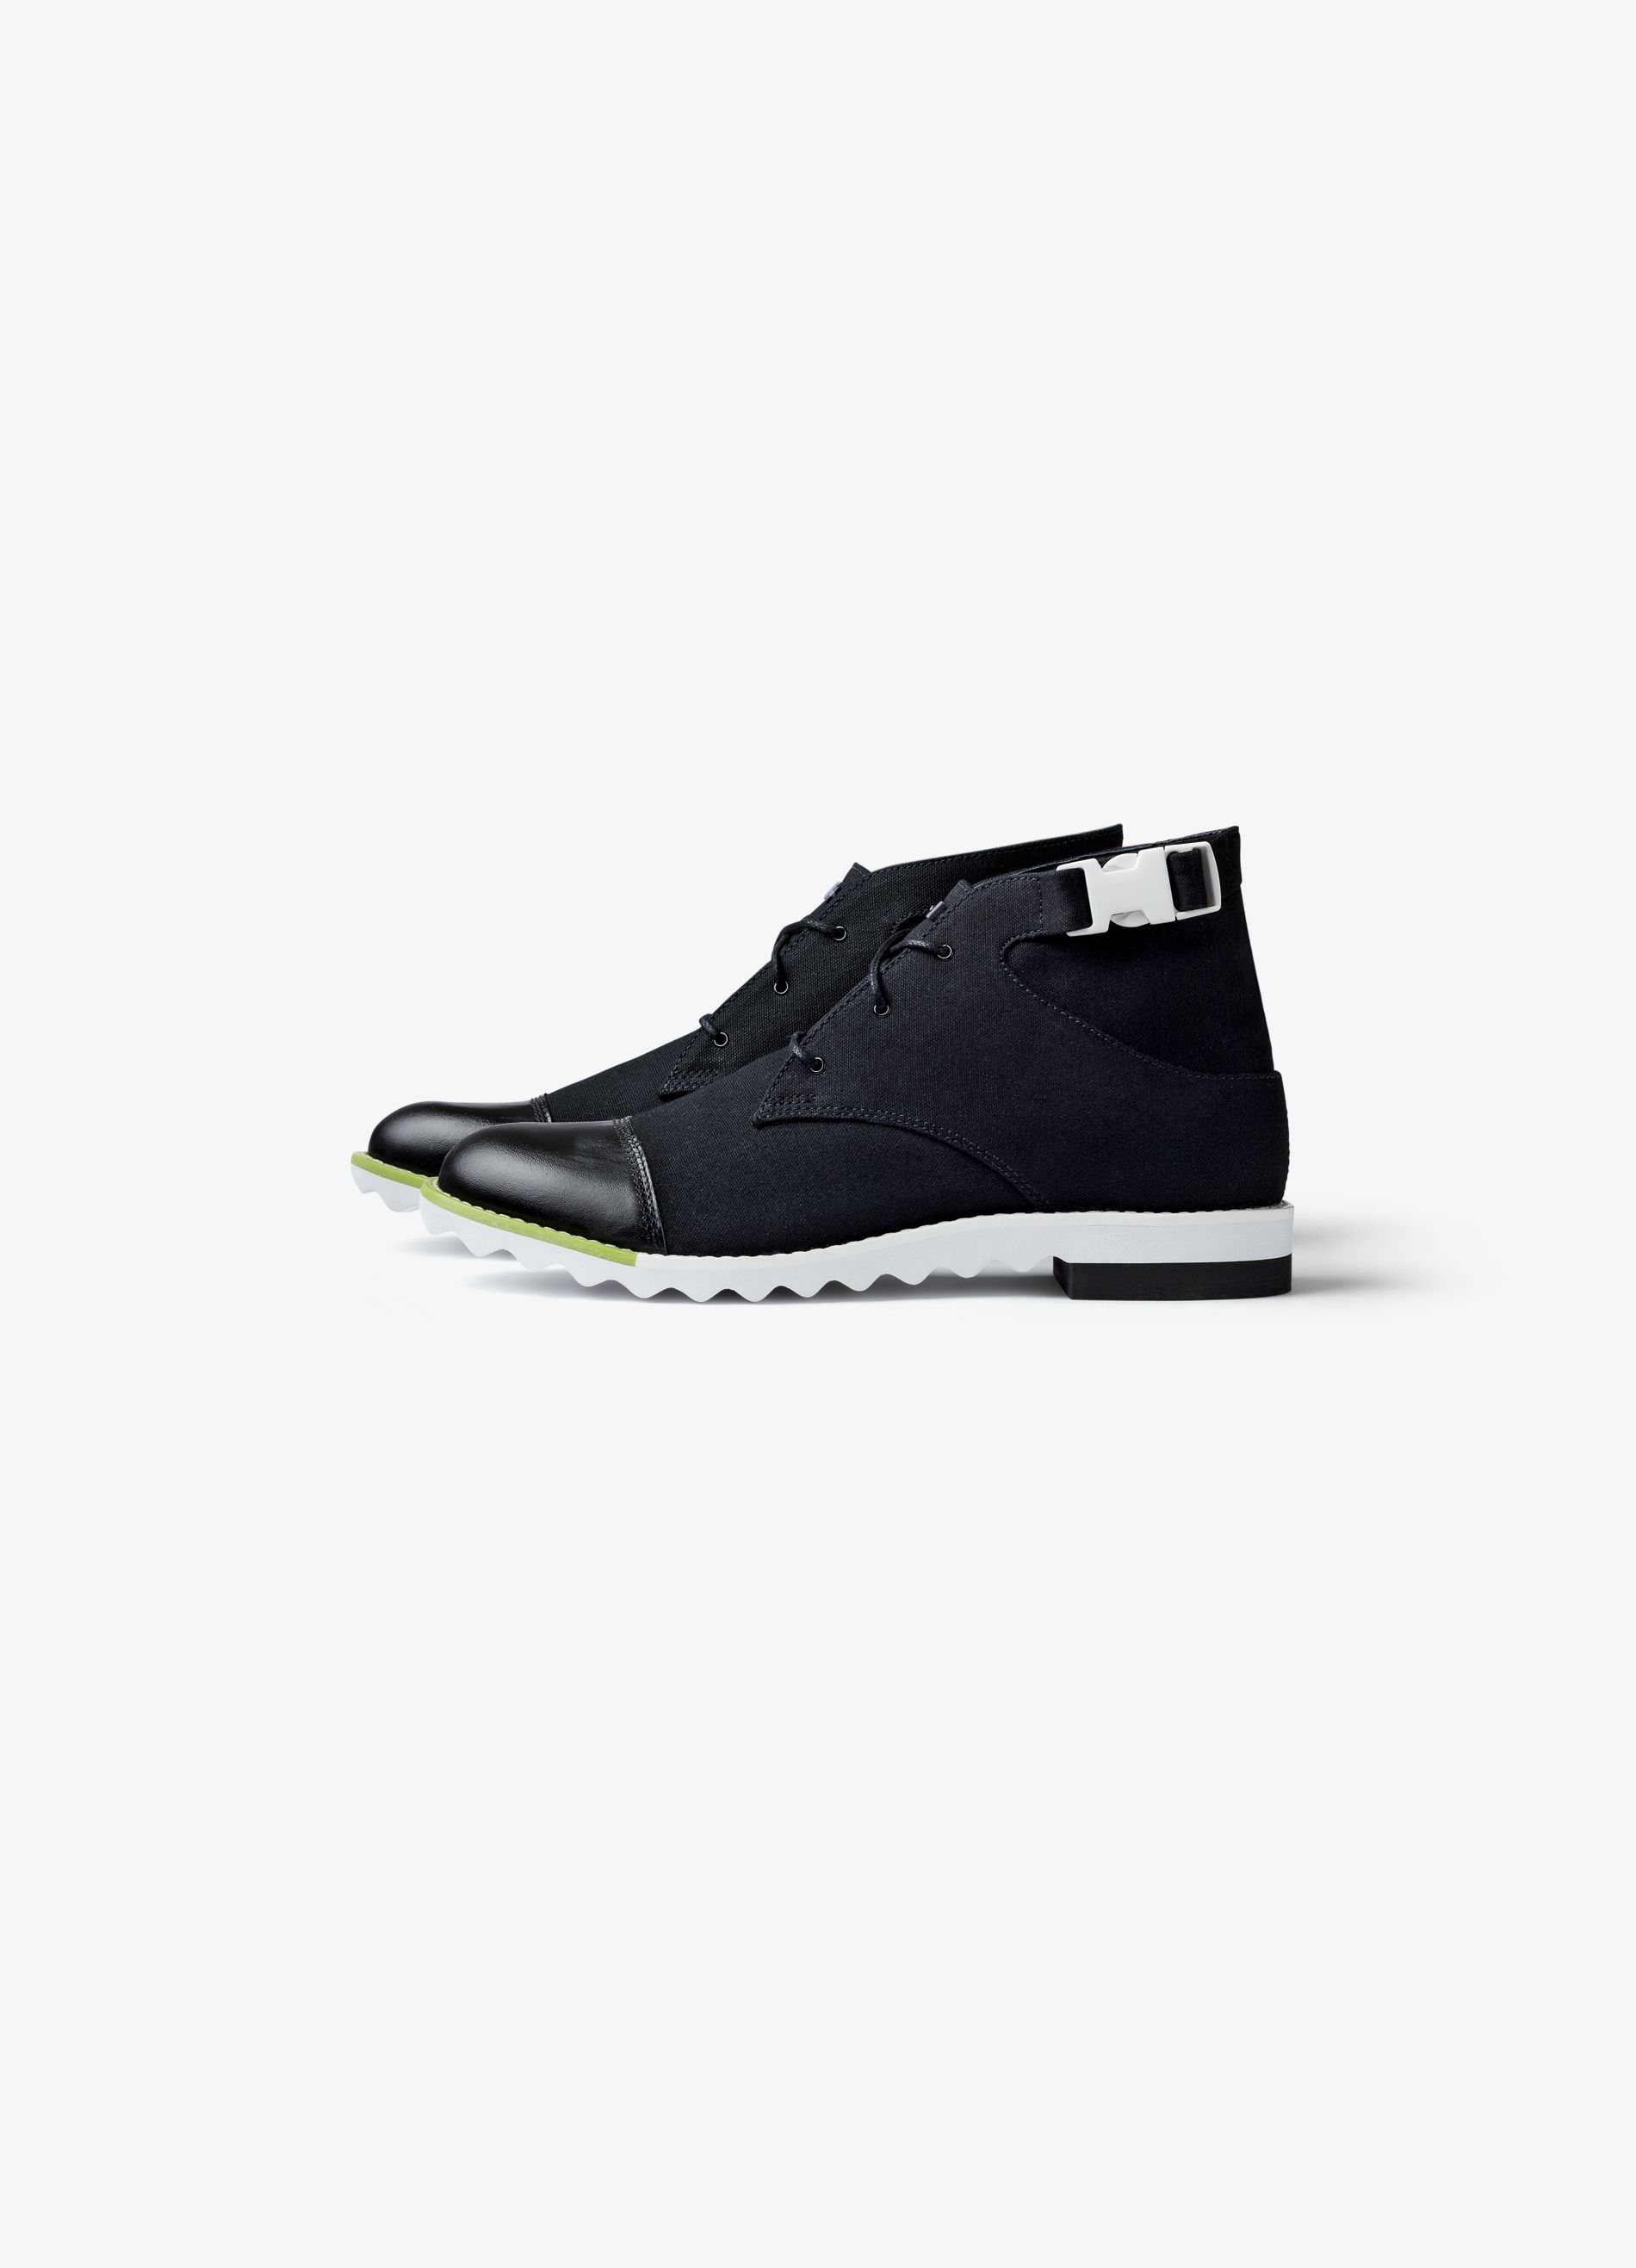 bd3e1ddb8a0 adidas slvr... I think these may be the next pair of shoes I buy ...